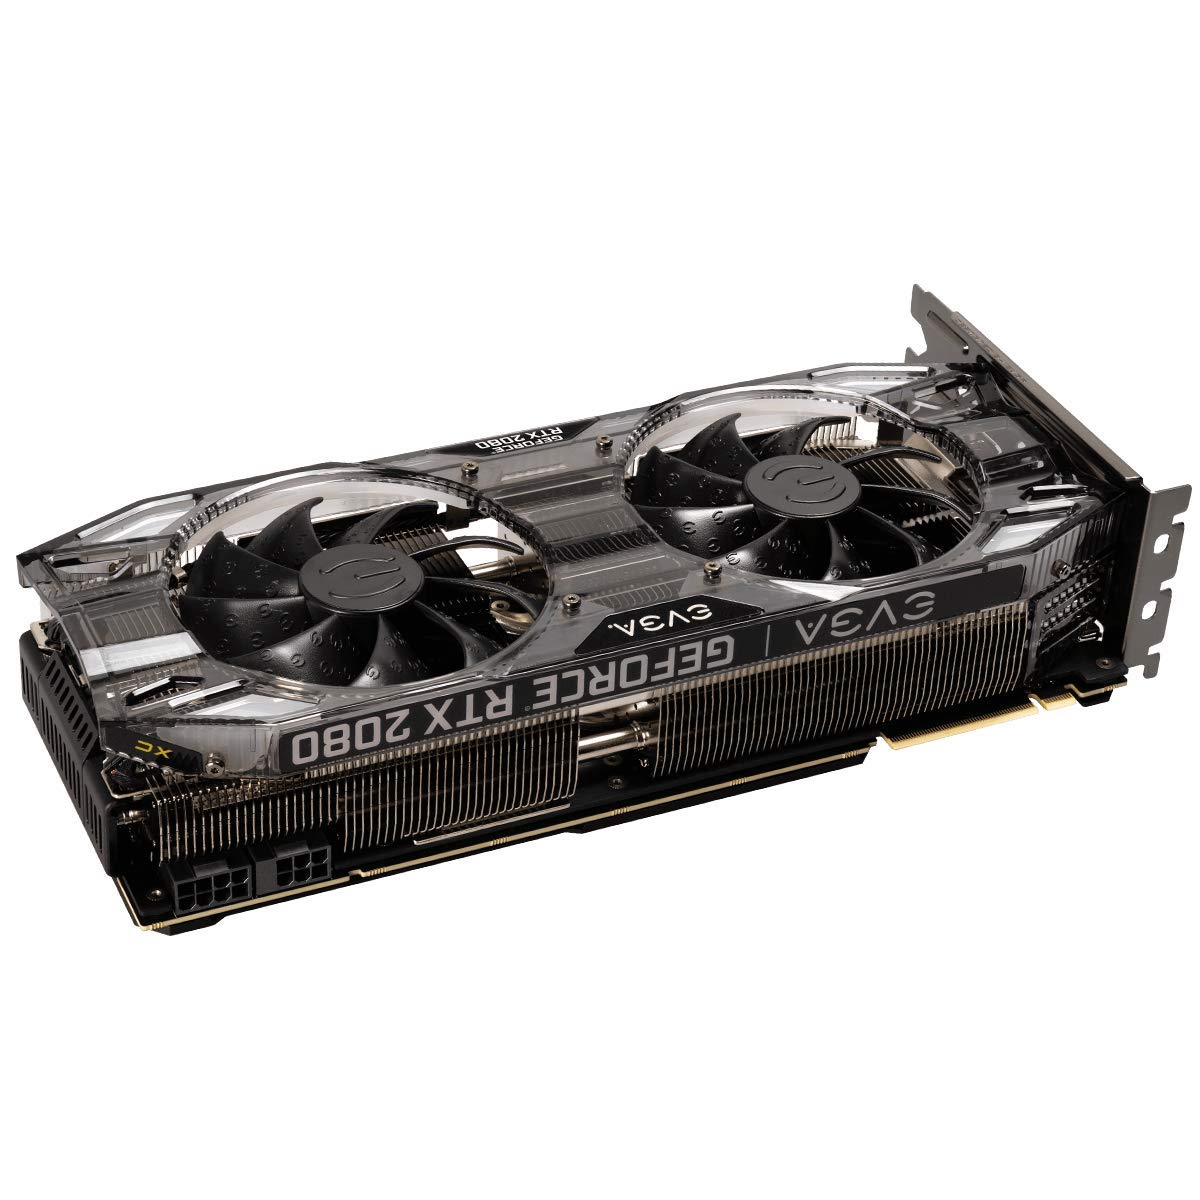 EVGA GeForce RTX 2080 XC ULTRA GAMING, 8GB GDDR6, Dual HDB Fans & RGB LED Graphics Card 08G-P4-2183-KR by EVGA (Image #6)